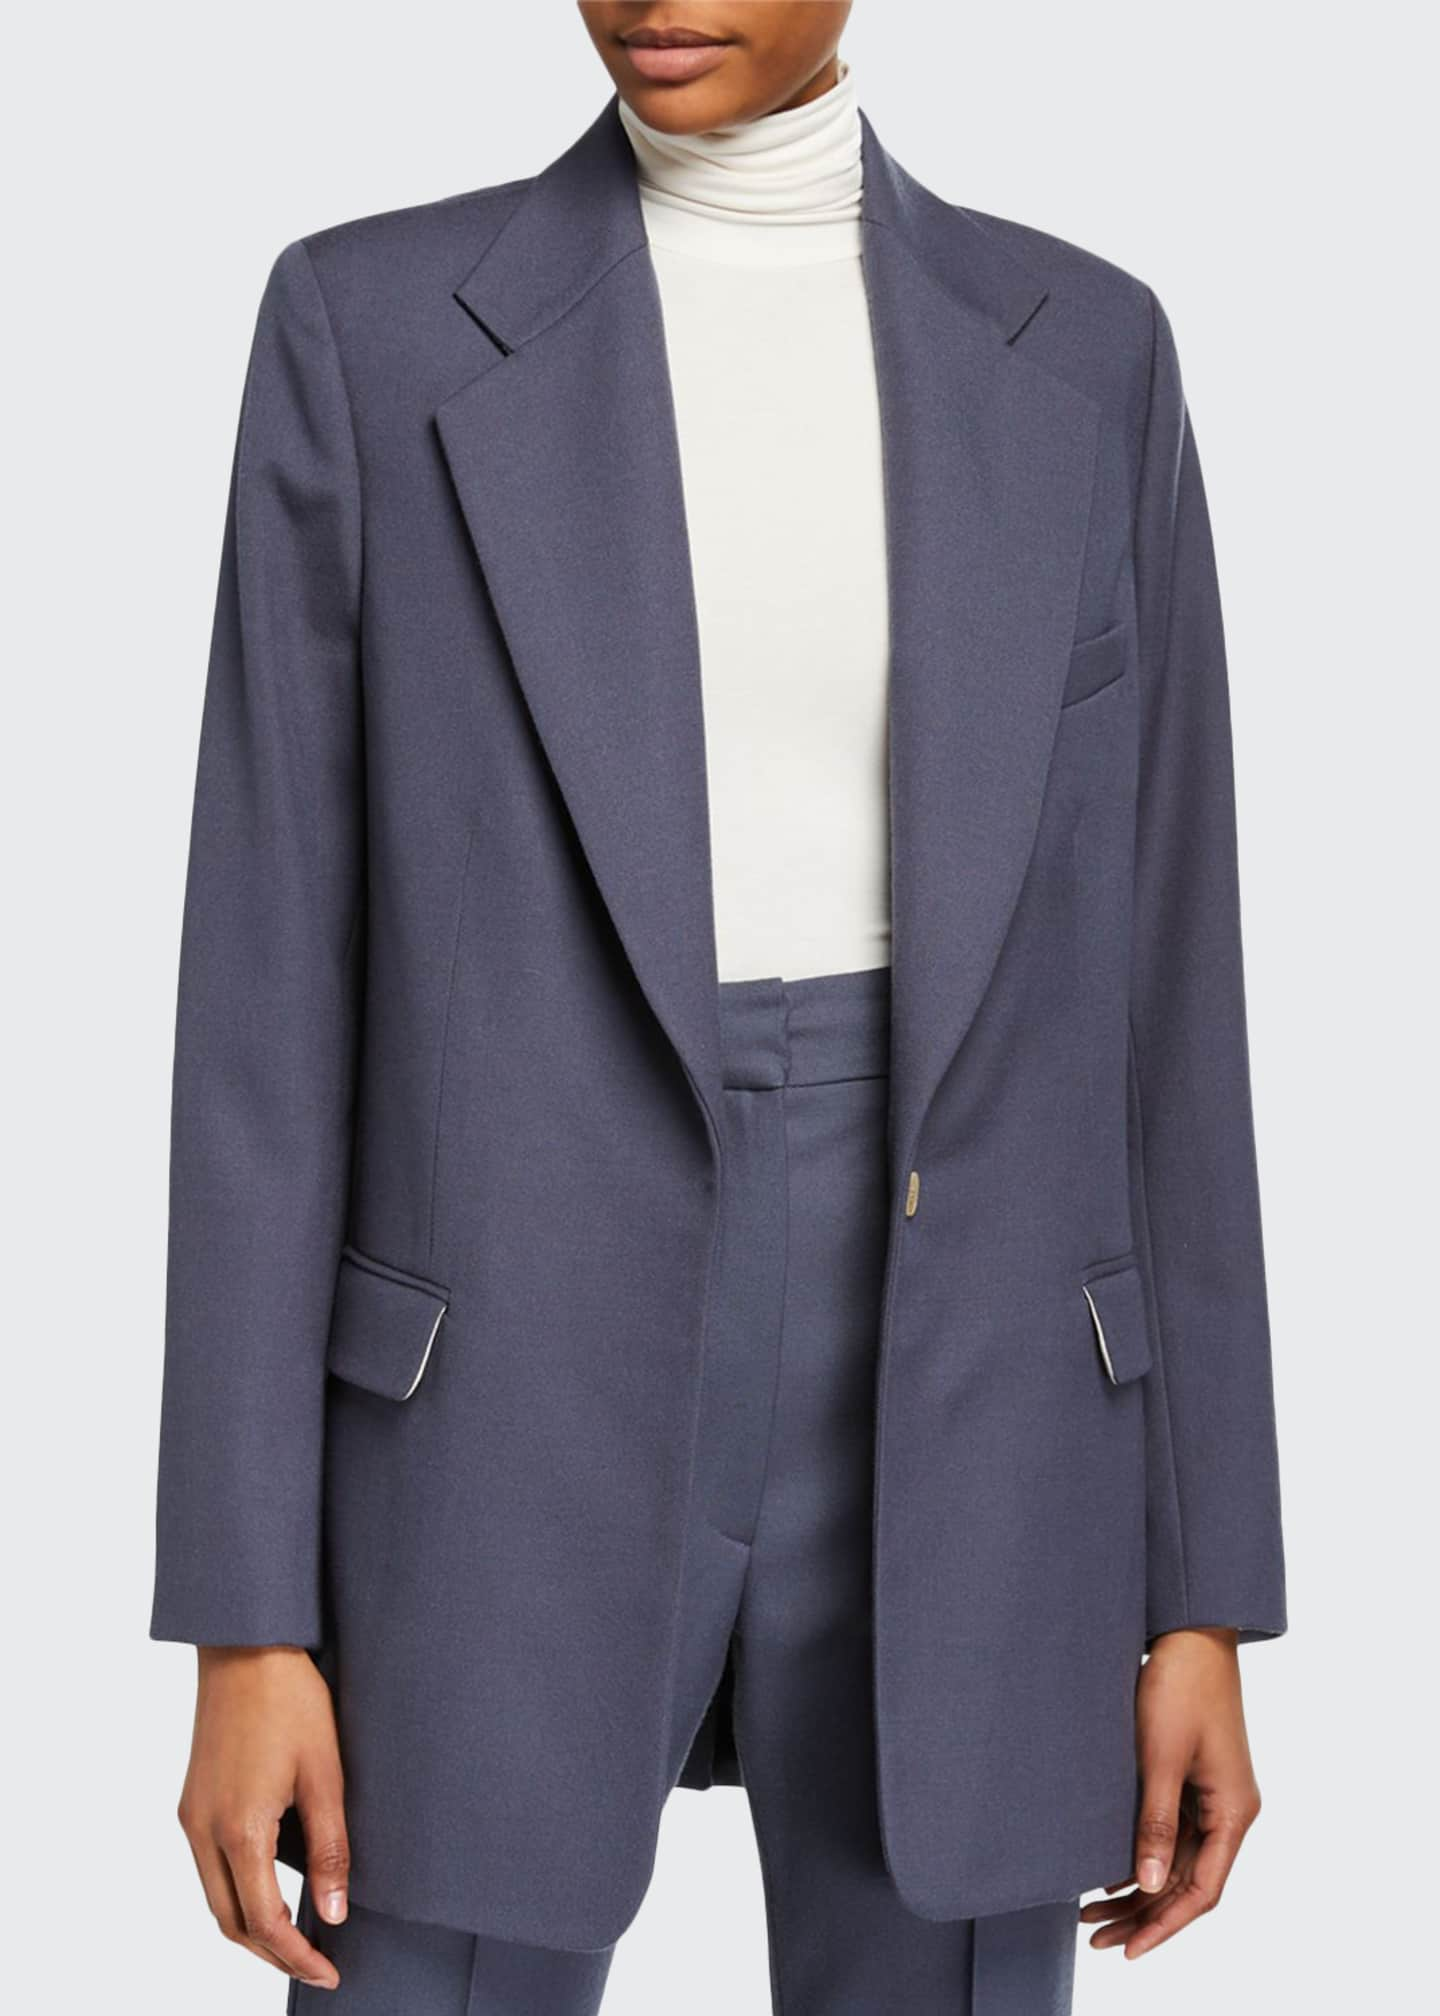 Boon The Shop Wool-Blend Oversized Boxy Suit Jacket